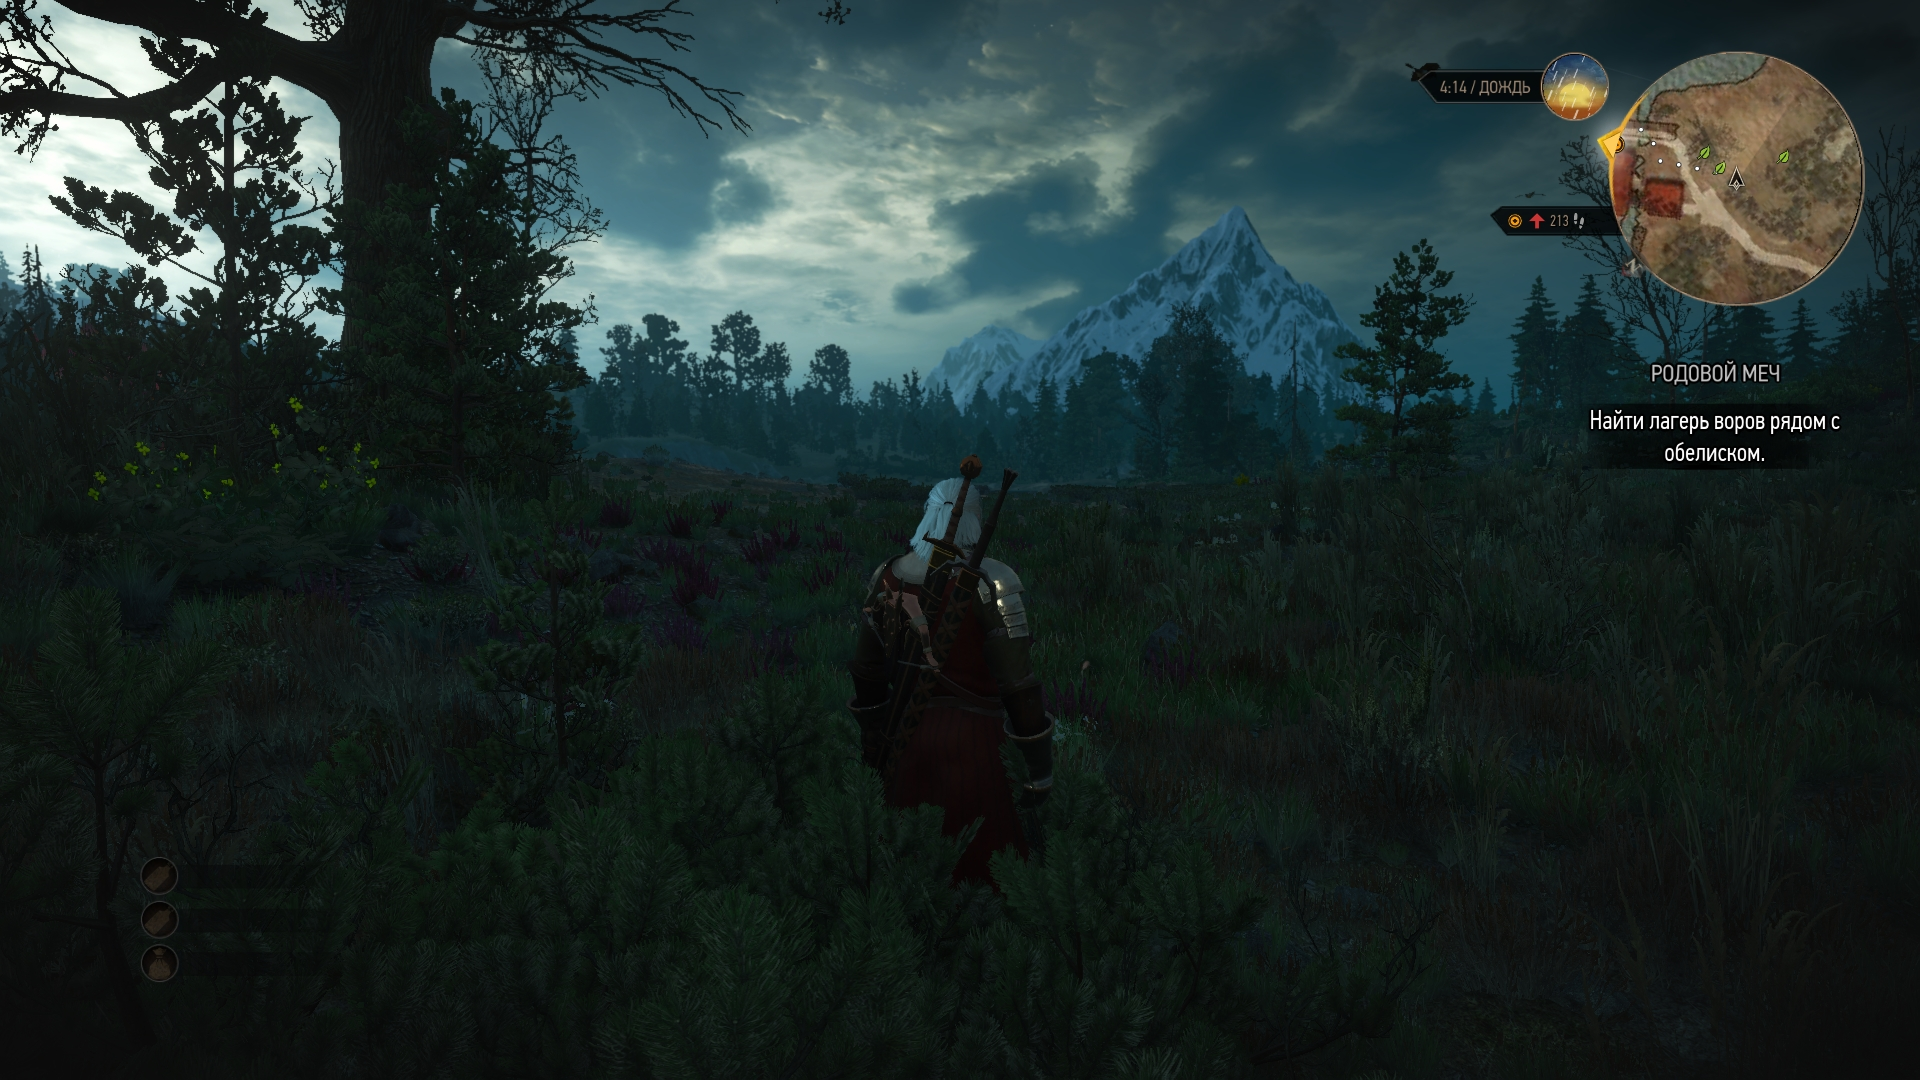 witcher3 2016-10-12 16-38-10-45.jpg - Witcher 3: Wild Hunt, the